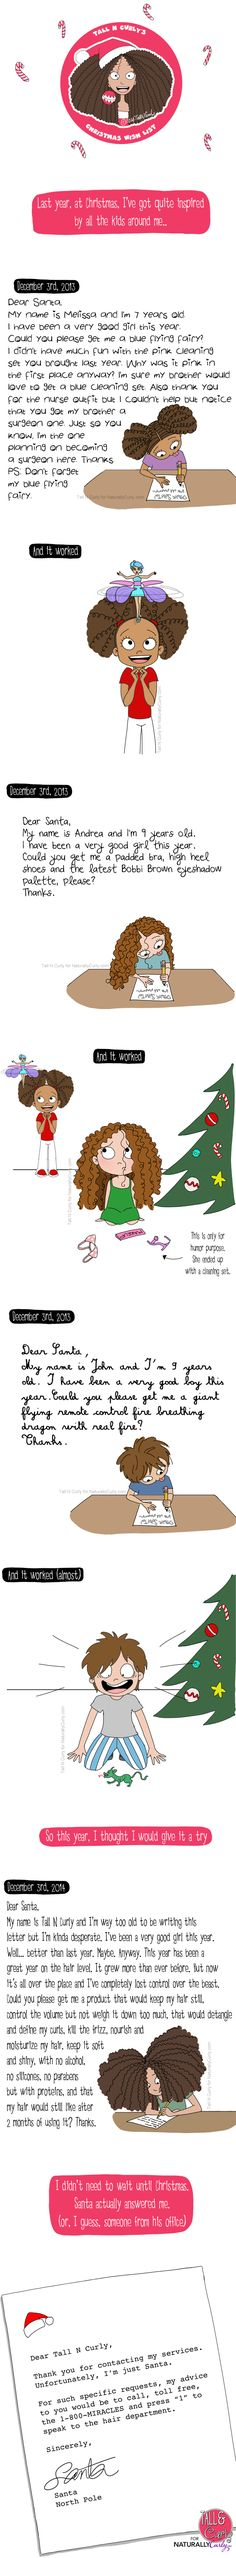 So @tallncurly1 made a Christmas wishlist that even SANTA might not be able to fulfill. Picky picky, we curly girls...